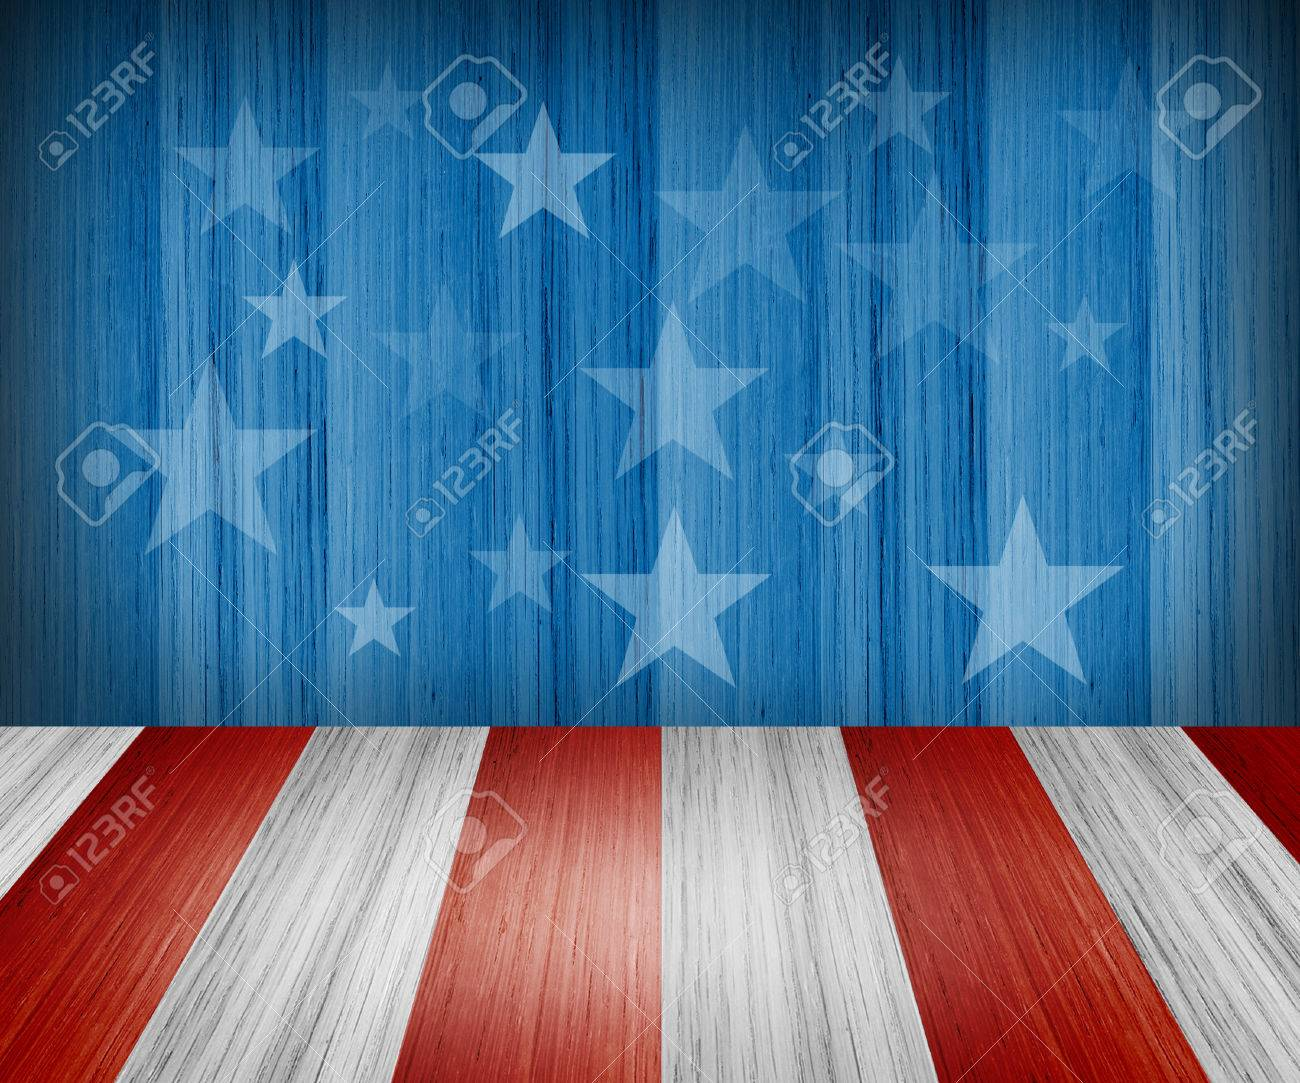 USA style background - empty wooden table for display montages - 43677808